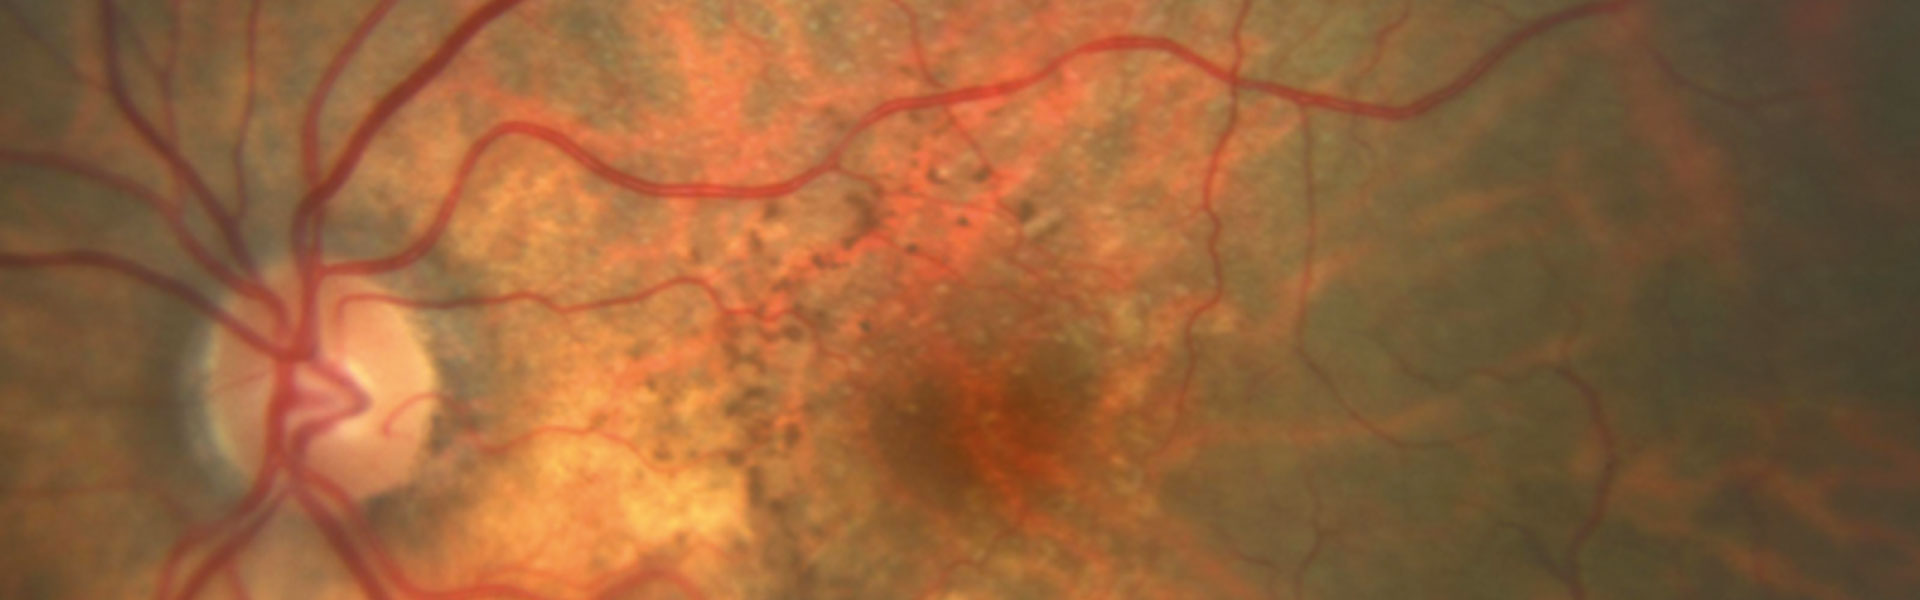 Age-Related Macular Degeneration In Iran